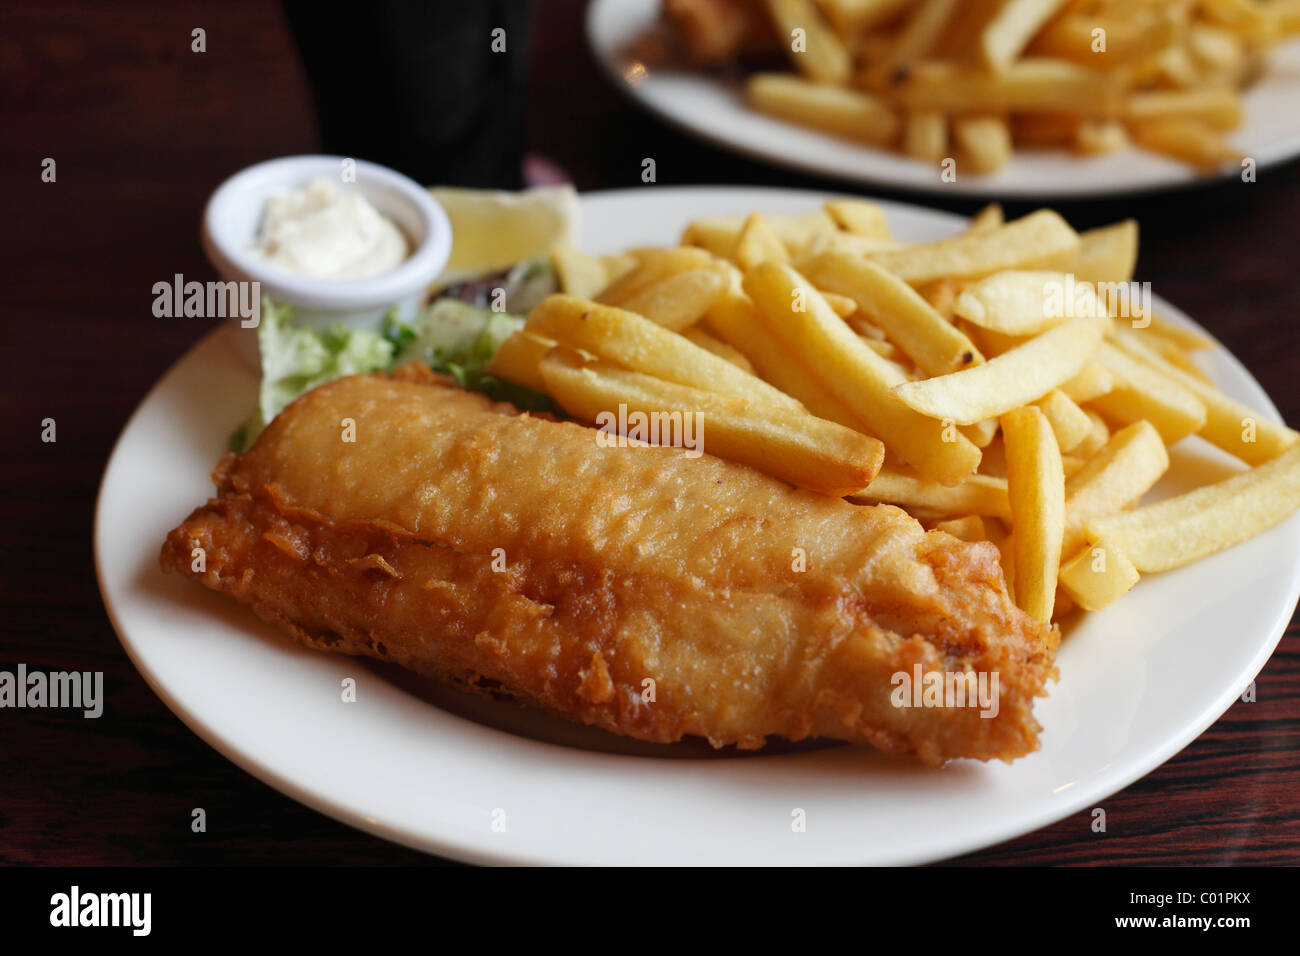 Fish and Chips, Republic of Ireland, Europe Stock Photo